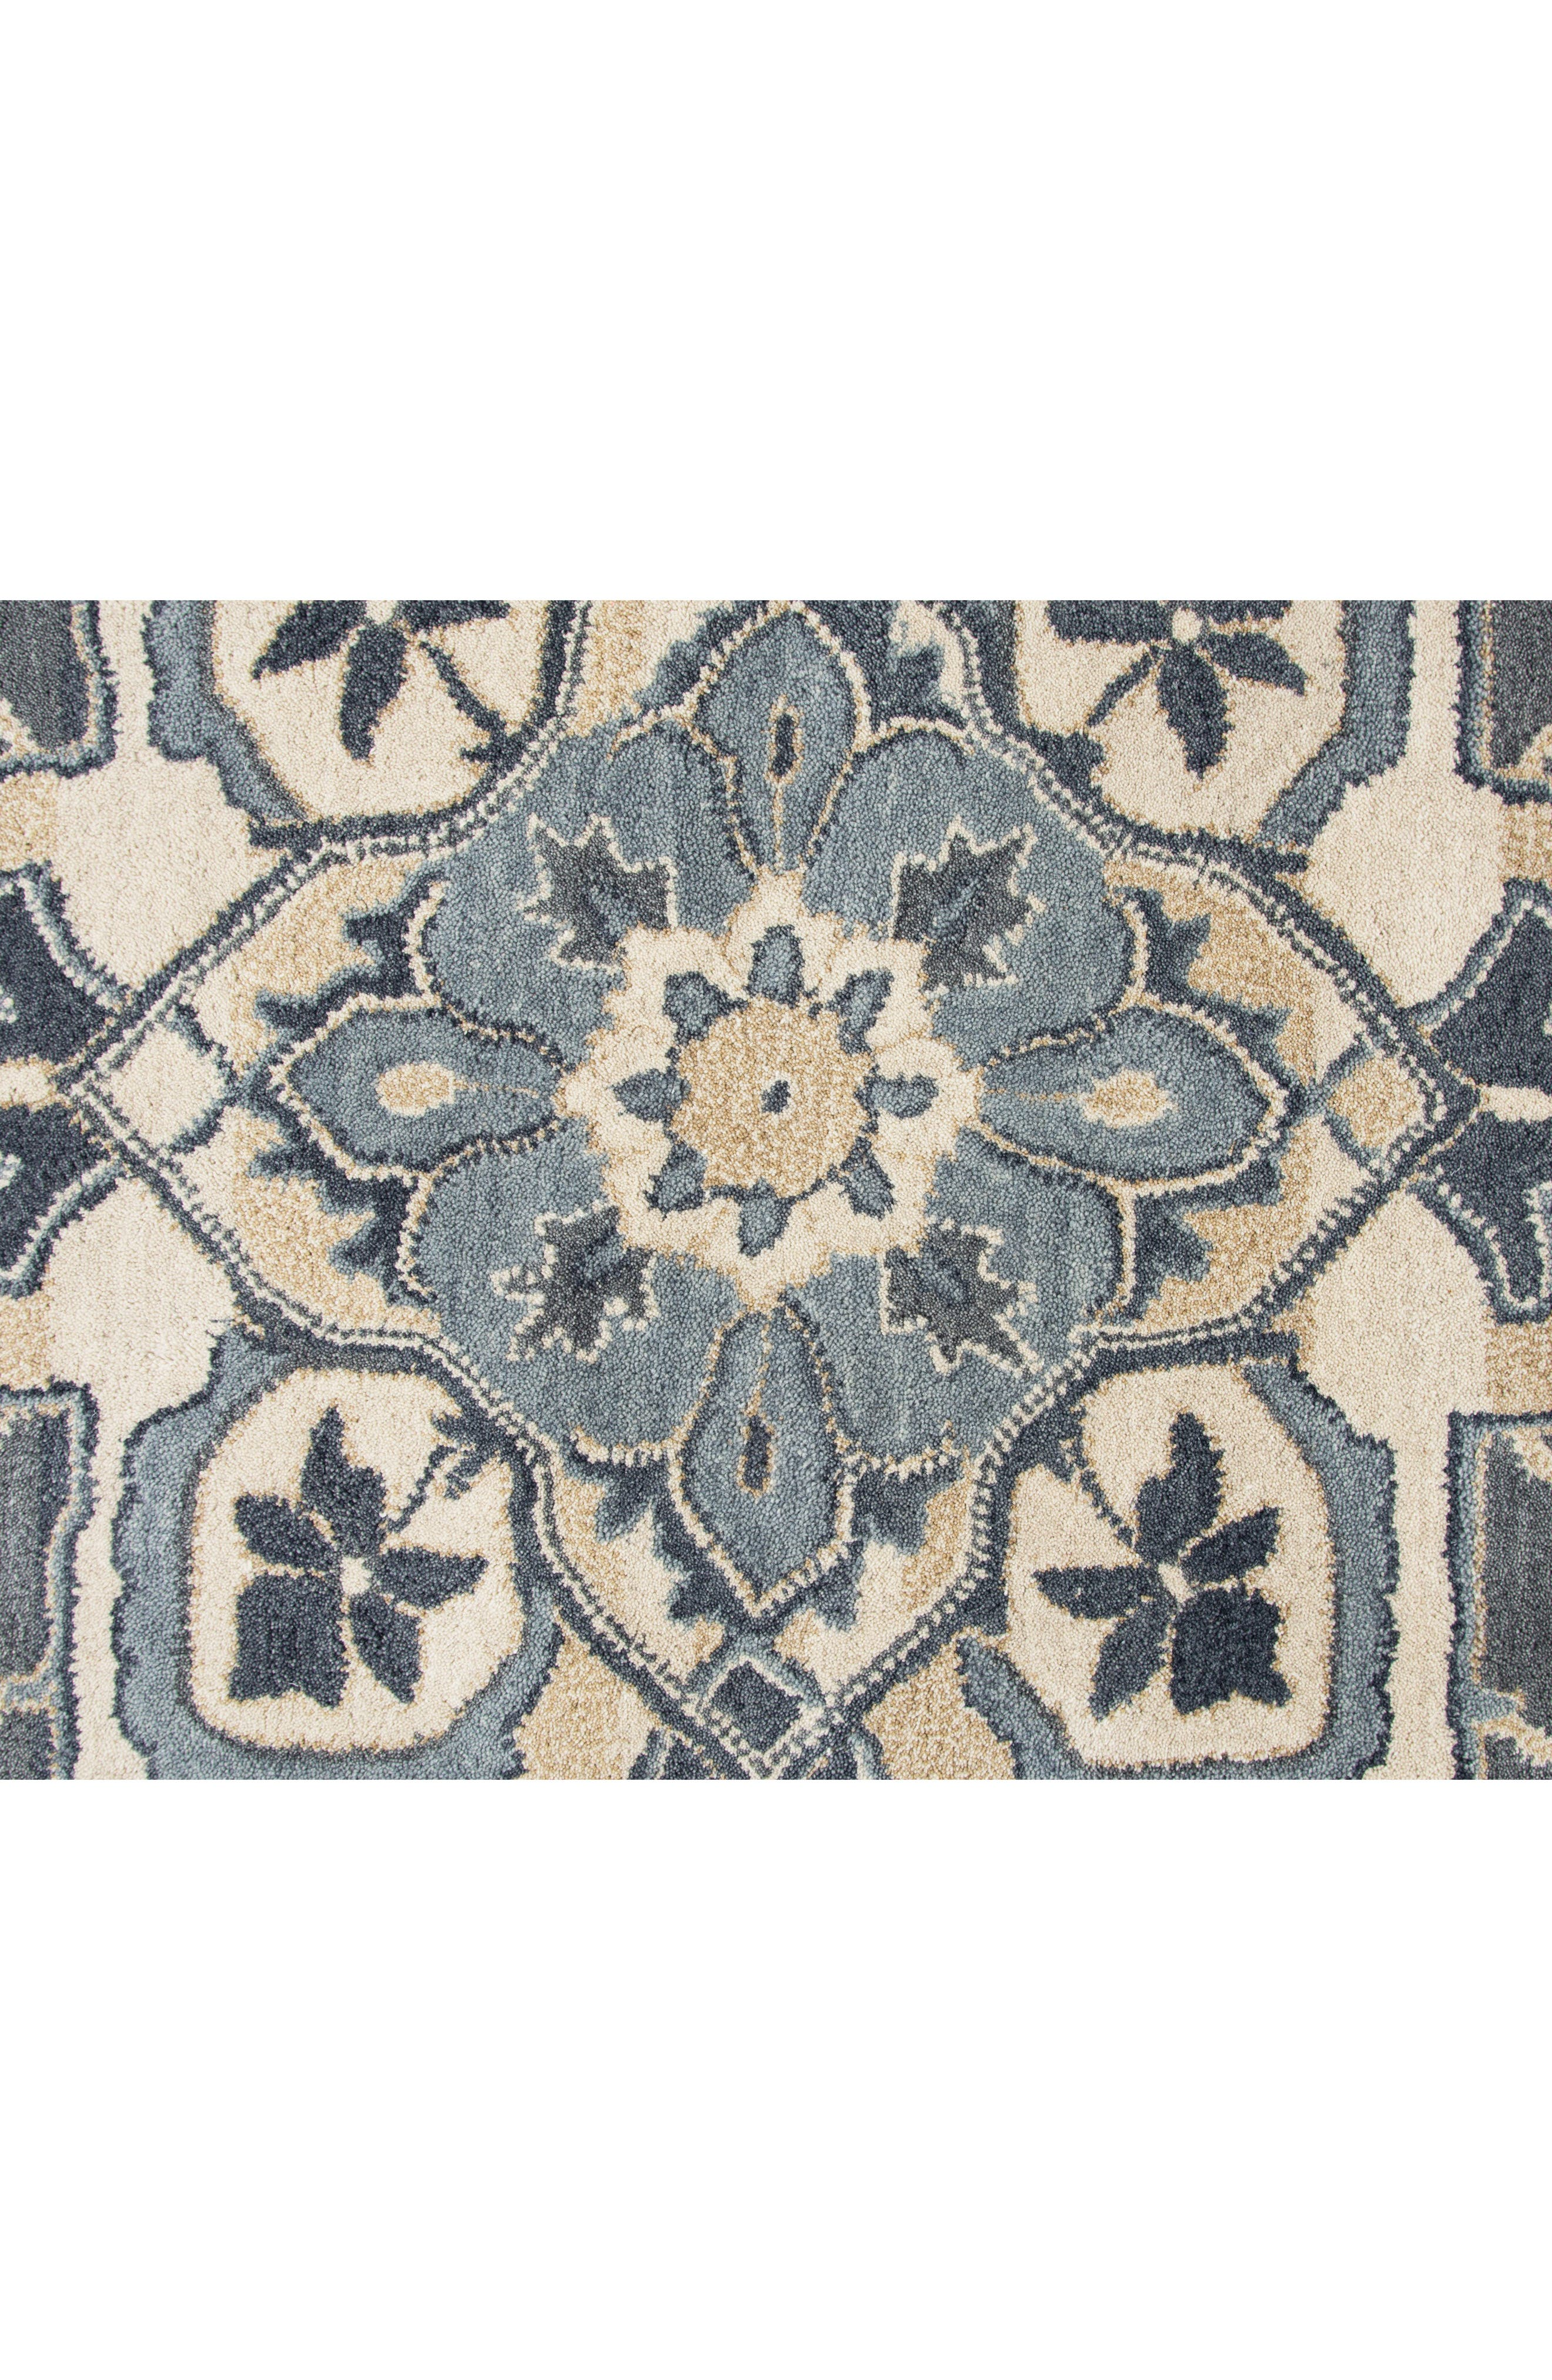 Veronica Hand Tufted Wool Rug,                             Alternate thumbnail 3, color,                             400